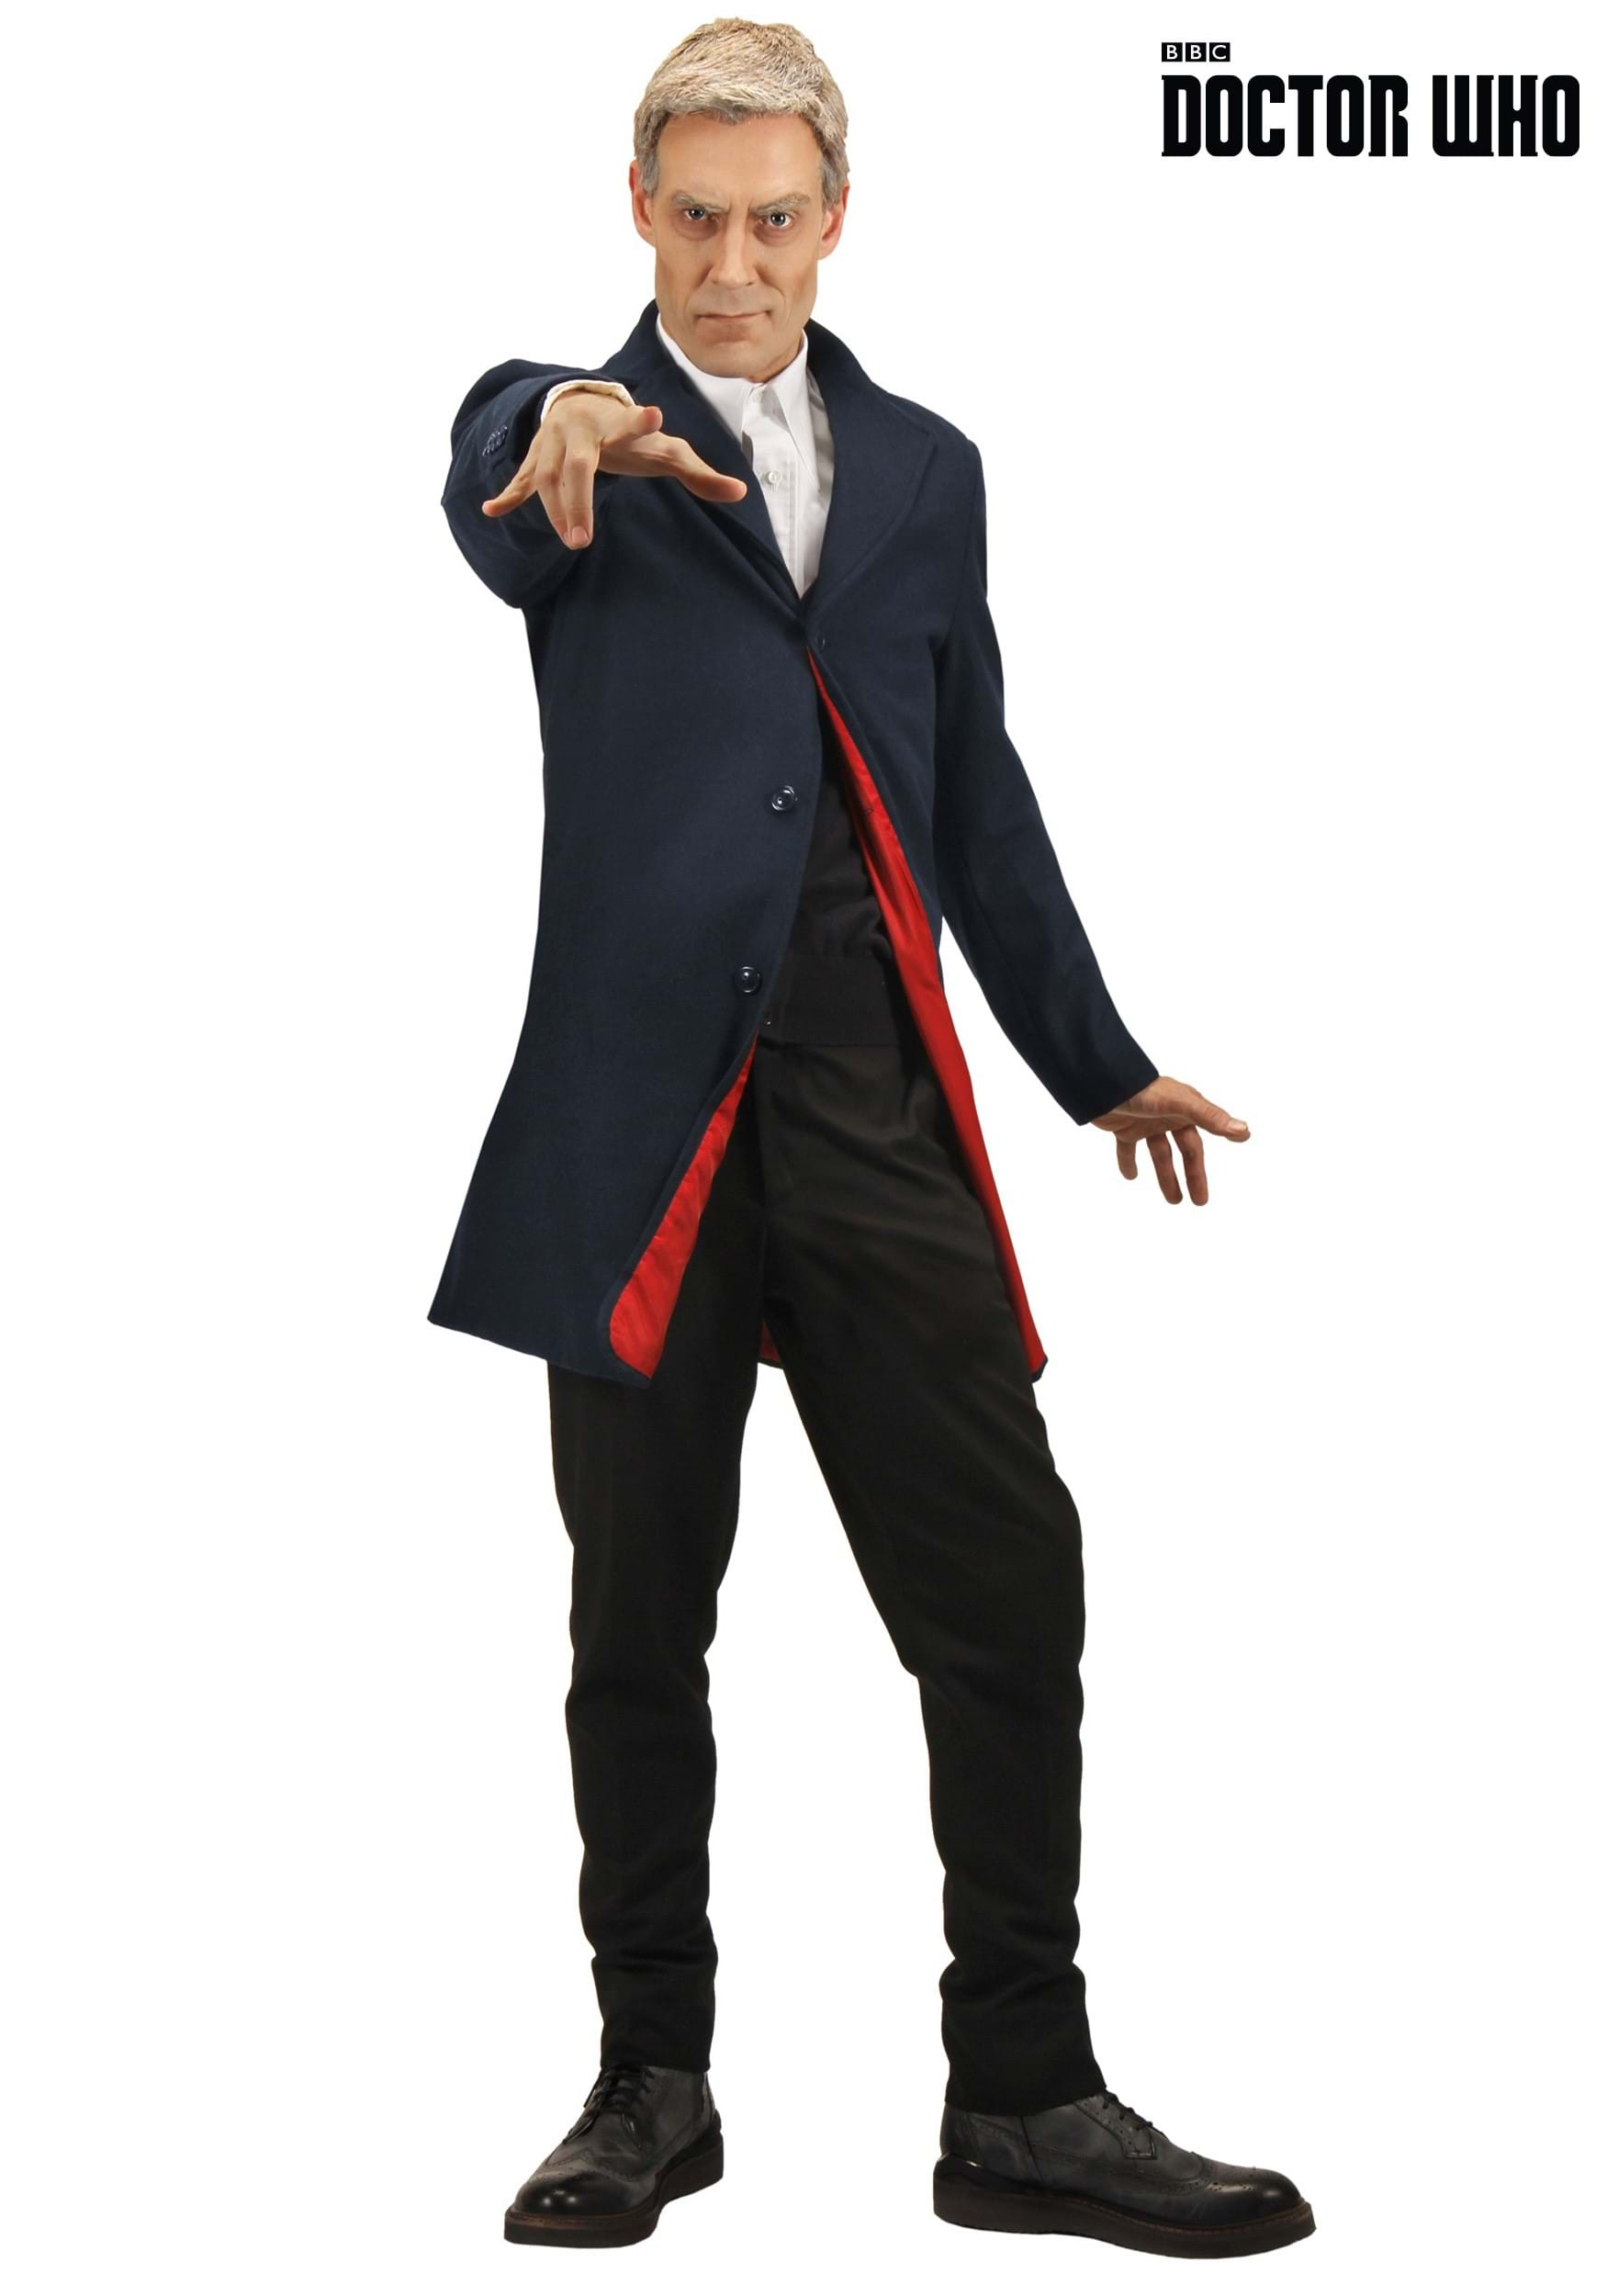 0018a791ecaa Doctor Who Costumes - HalloweenCostumes.com